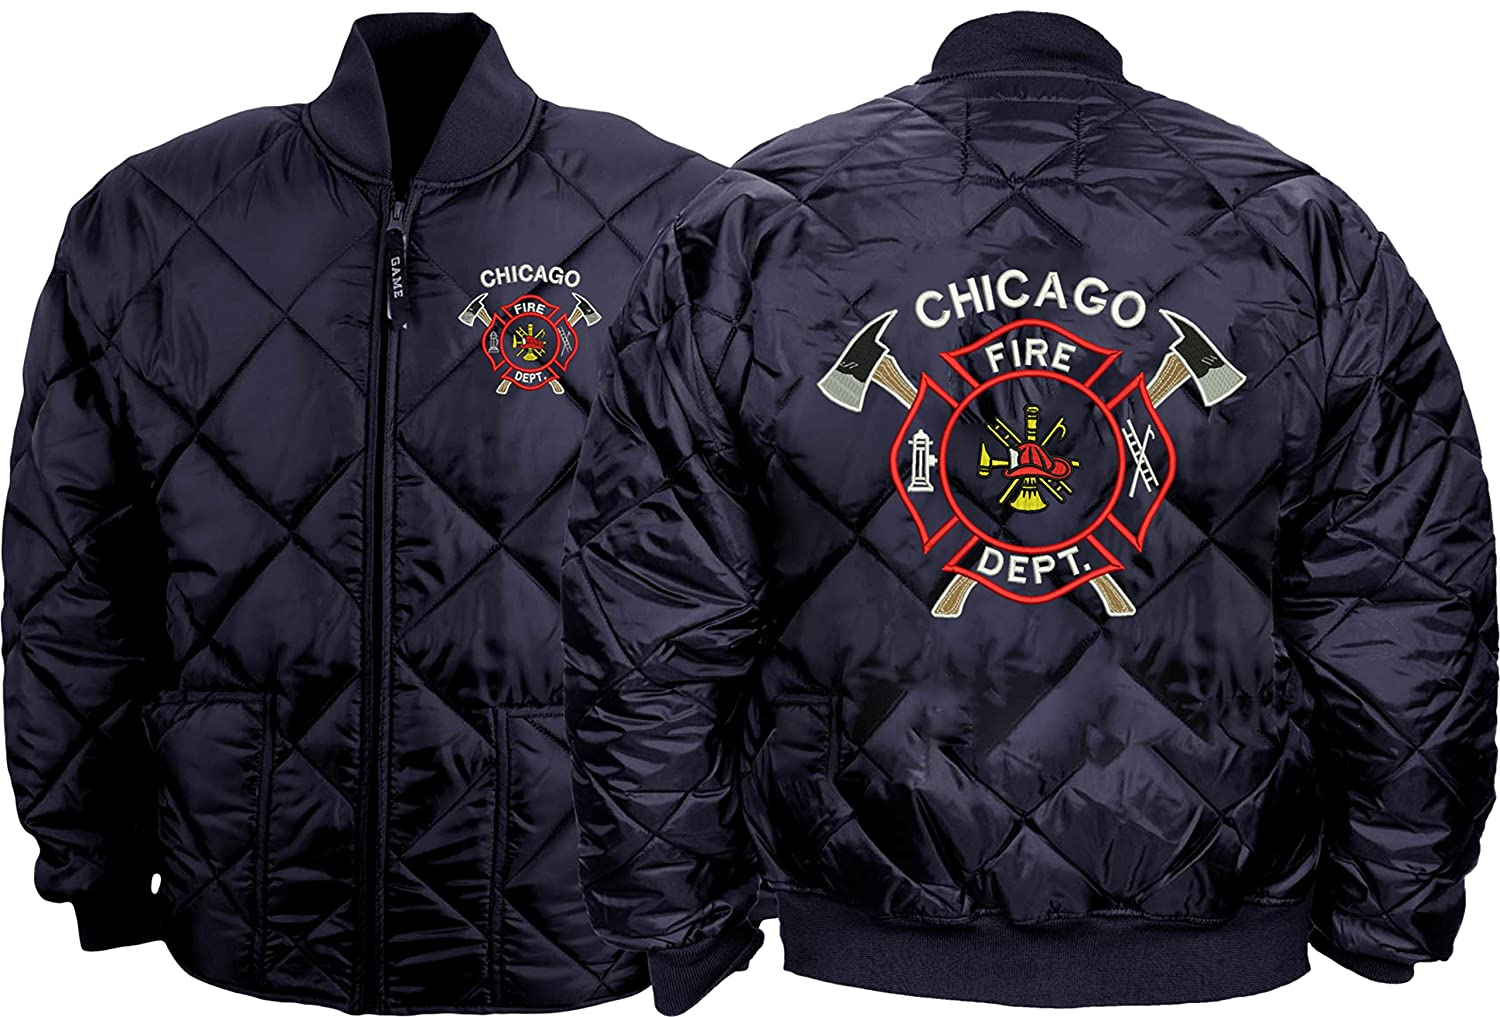 GAME Chicago Fire Department Quilted Jacket W/2-Sided Crossed Axes Logo As Seen on TV-1221-J